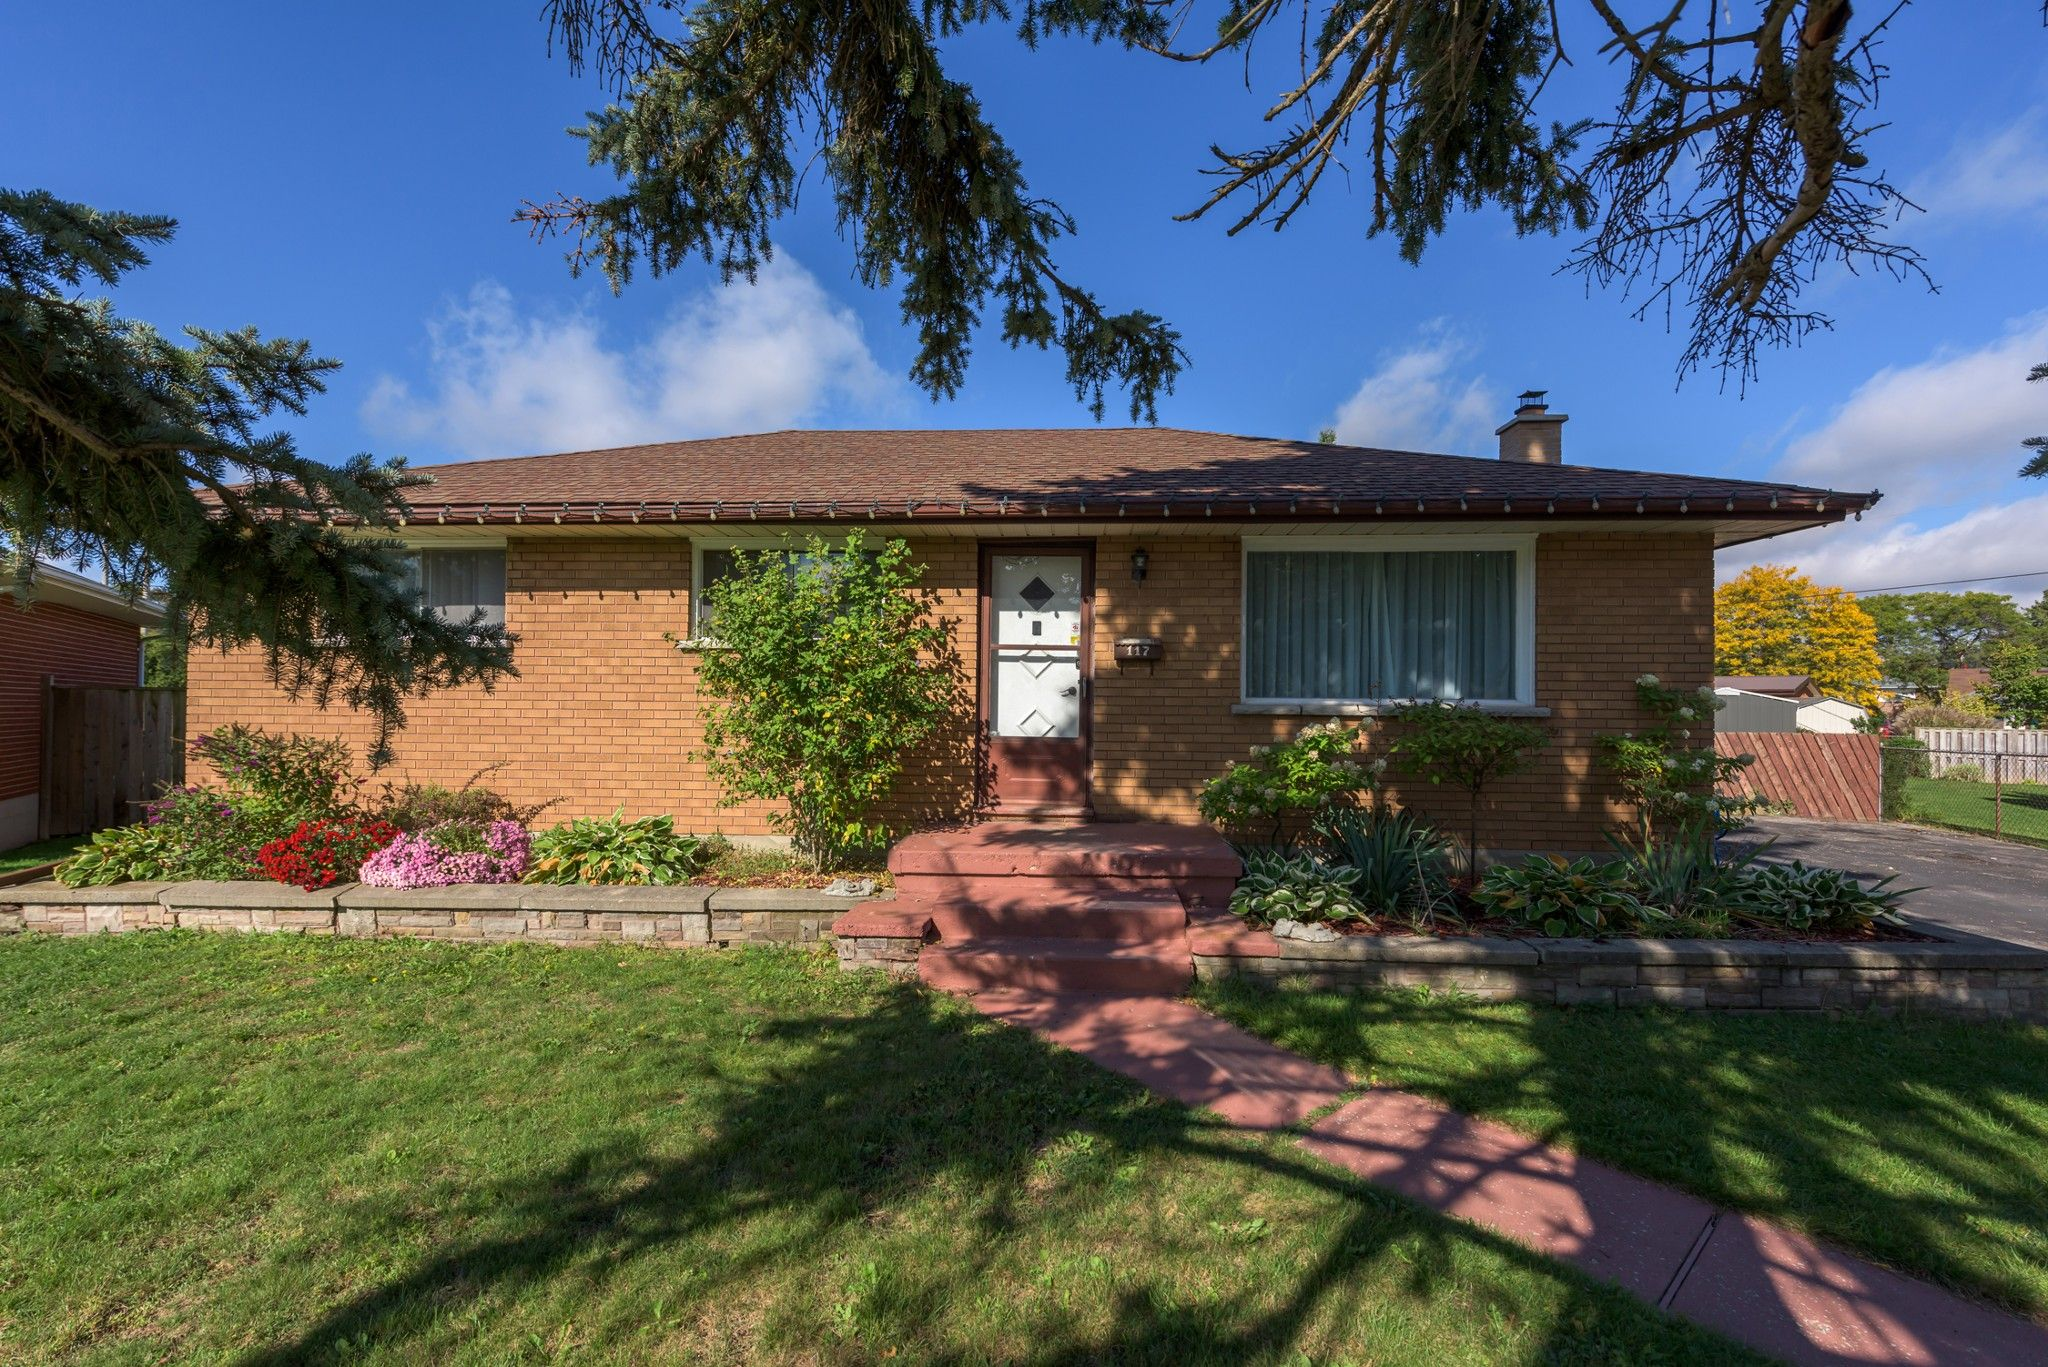 Main Photo: 117 GOLDWICK Crescent in London: Property for sale : MLS®# 40027735